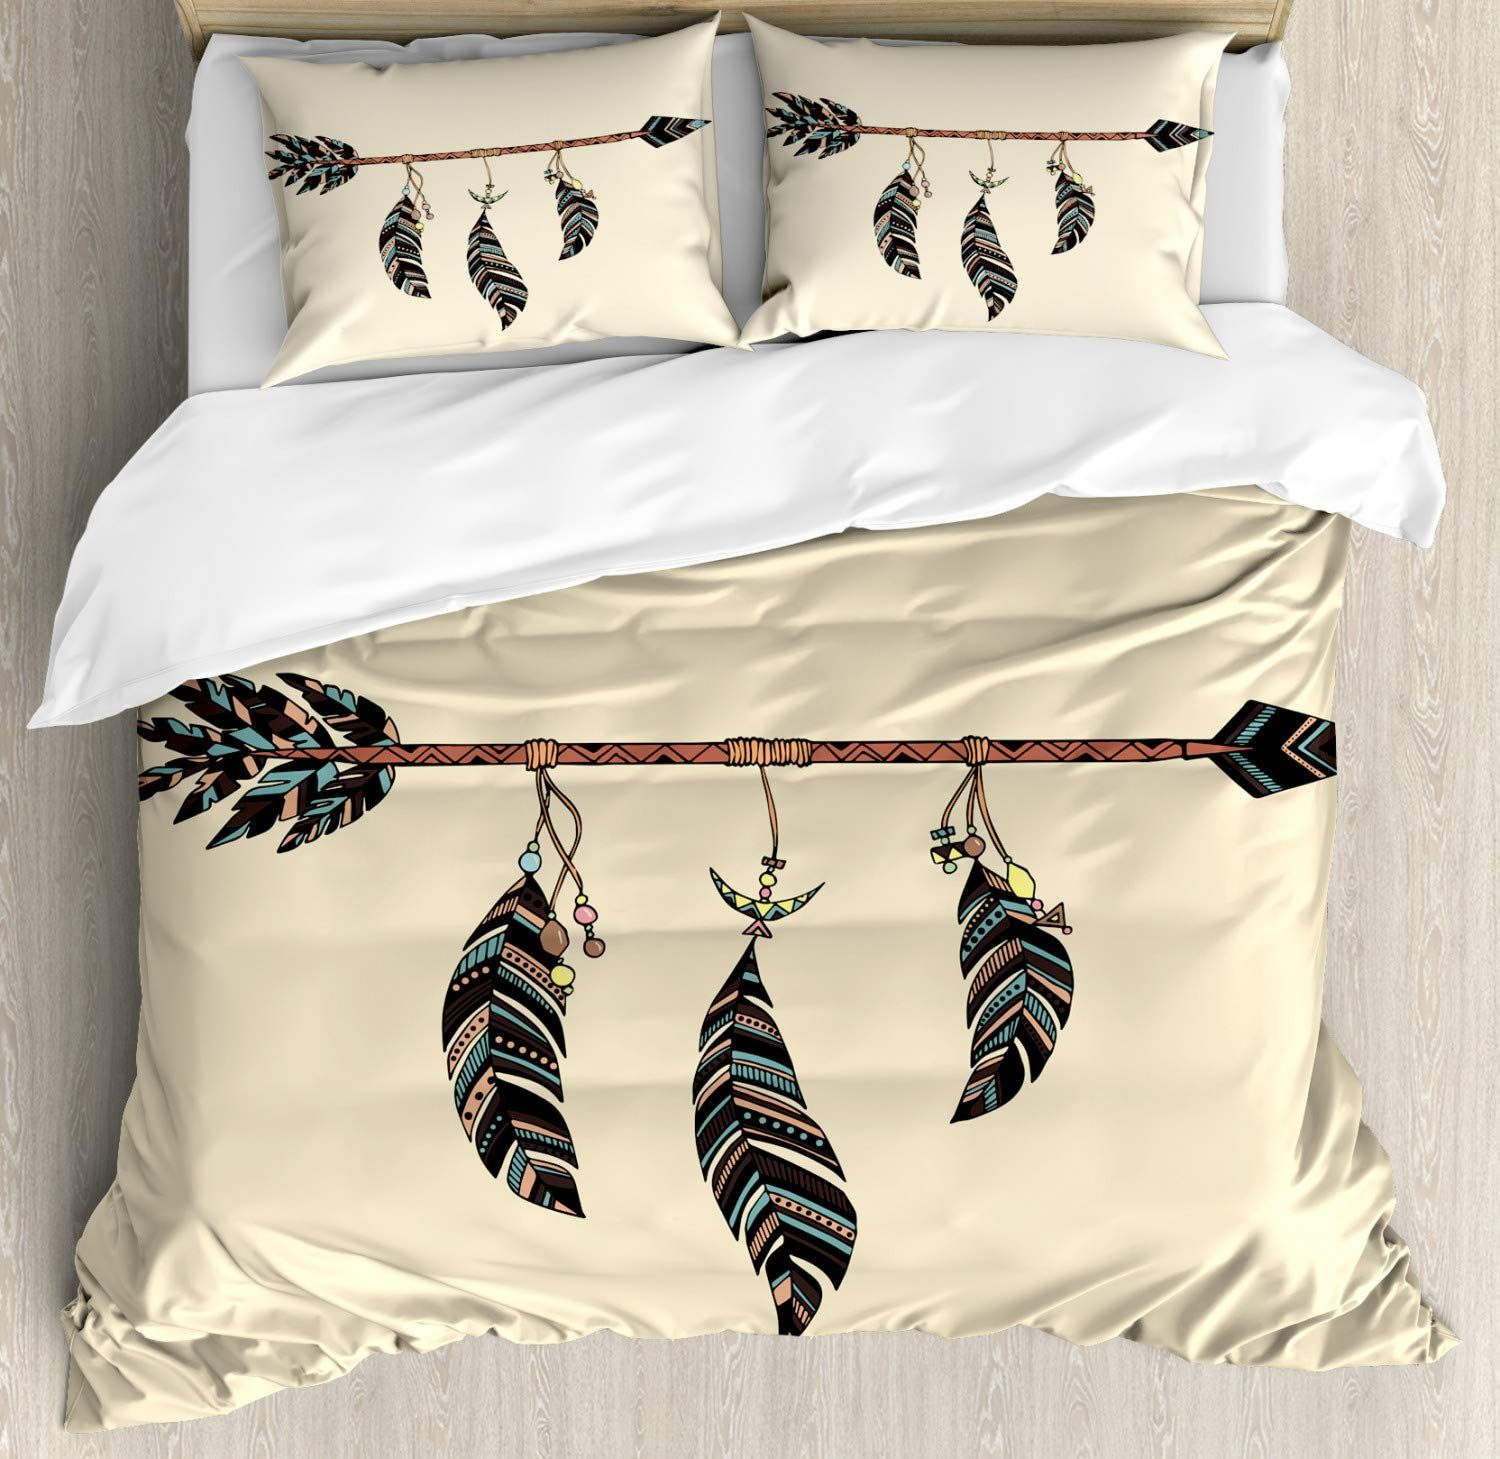 Arrow Decor Queen Size Duvet Cover Set By Ambesonne Arrow In Ethnical Pattern With Feathers De In 2020 Duvet Cover Sets King Size Duvet Covers Queen Size Duvet Covers